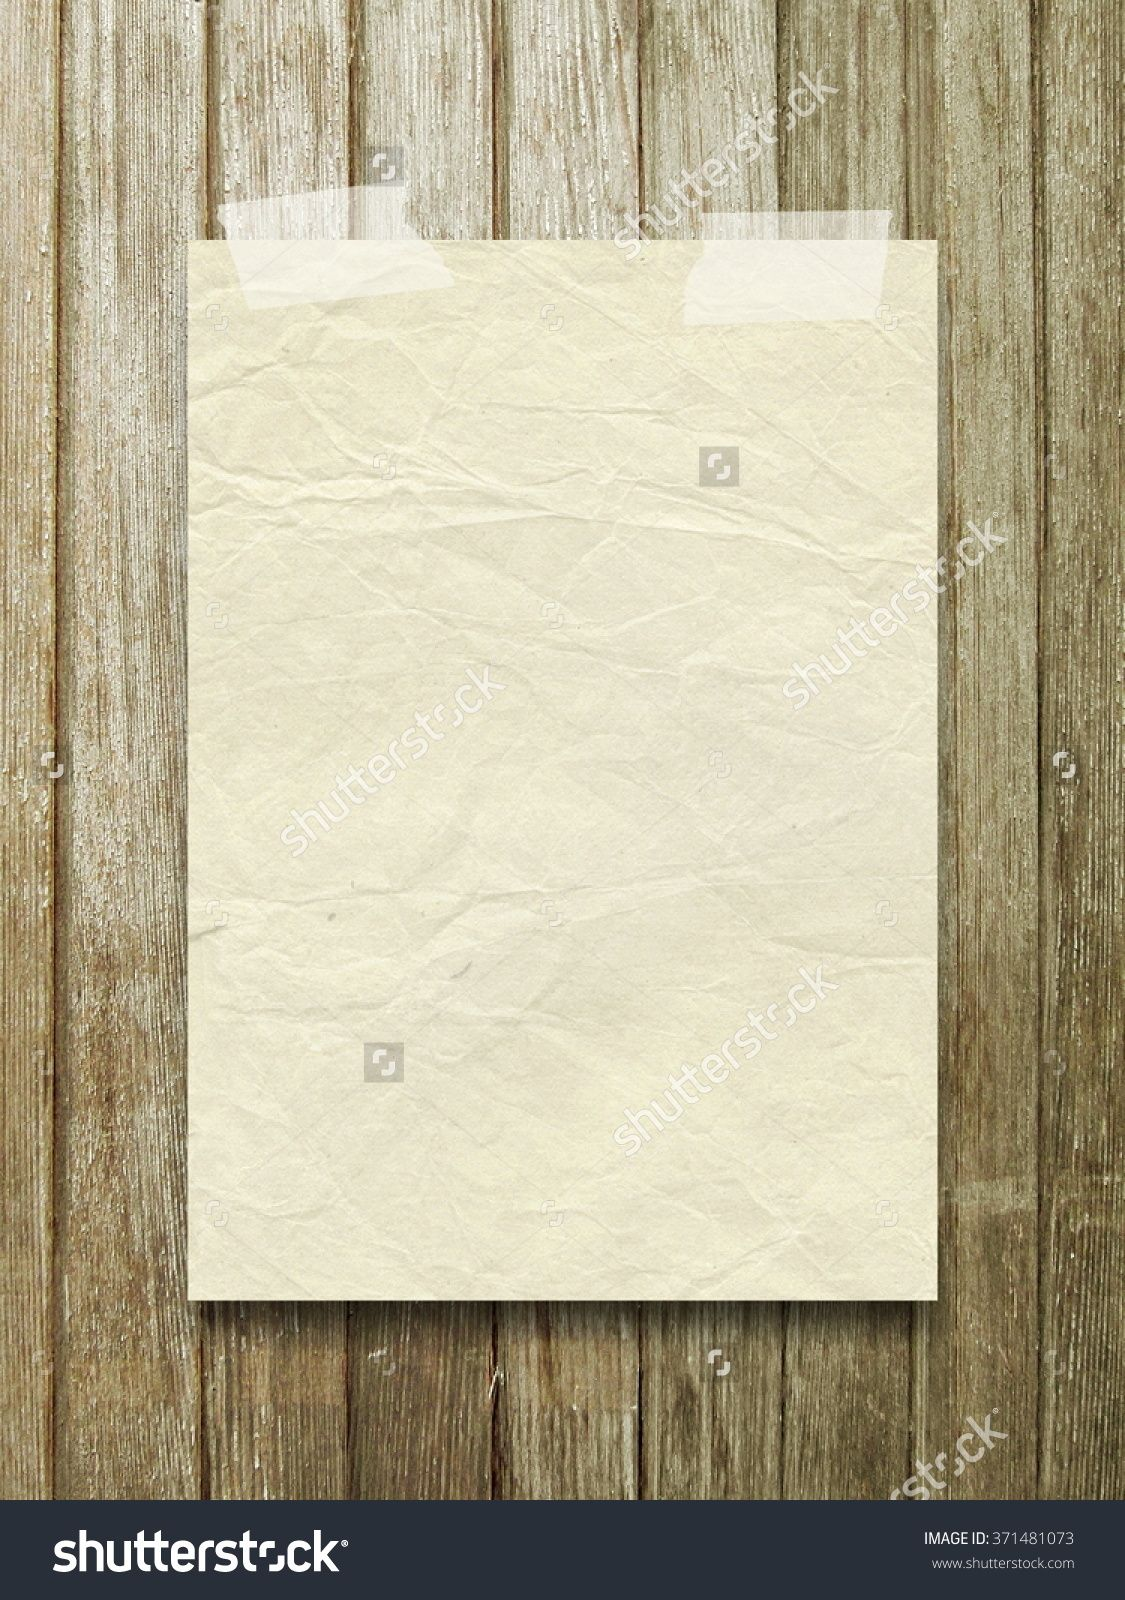 Close-up of one old vintage paper sheet with adhesive tape on brown vertical wooden boards background